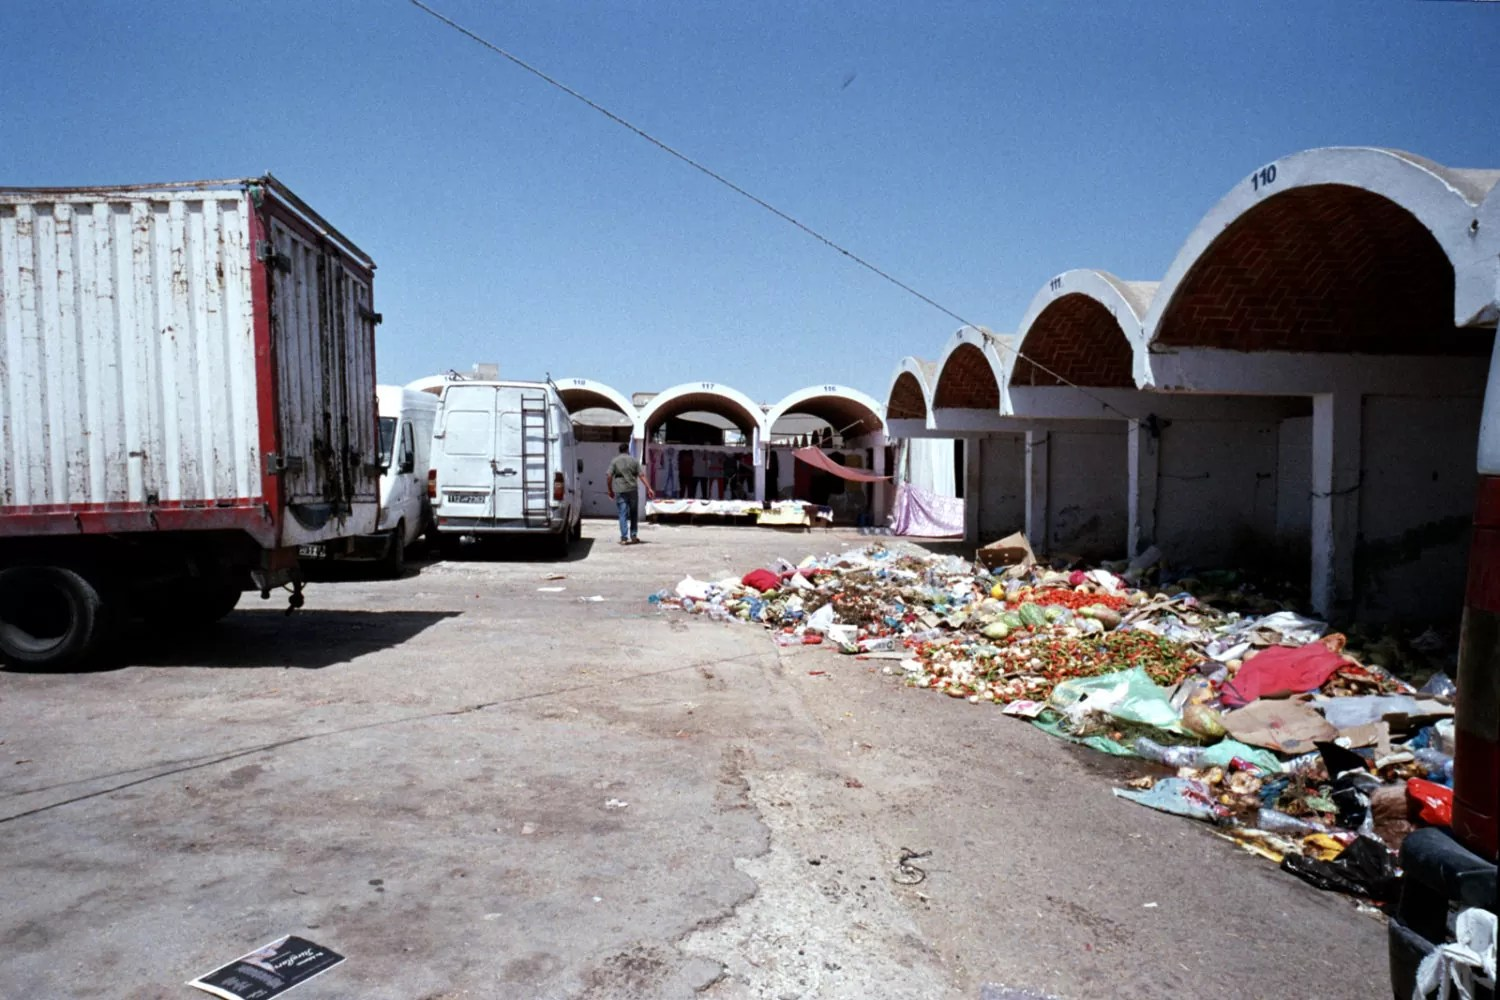 2017 09 01 31 e1512503045124 - Beyond the market (Nabeul -Tunisia) a Film Street Photography Session with leica M6 - fotostreet.it